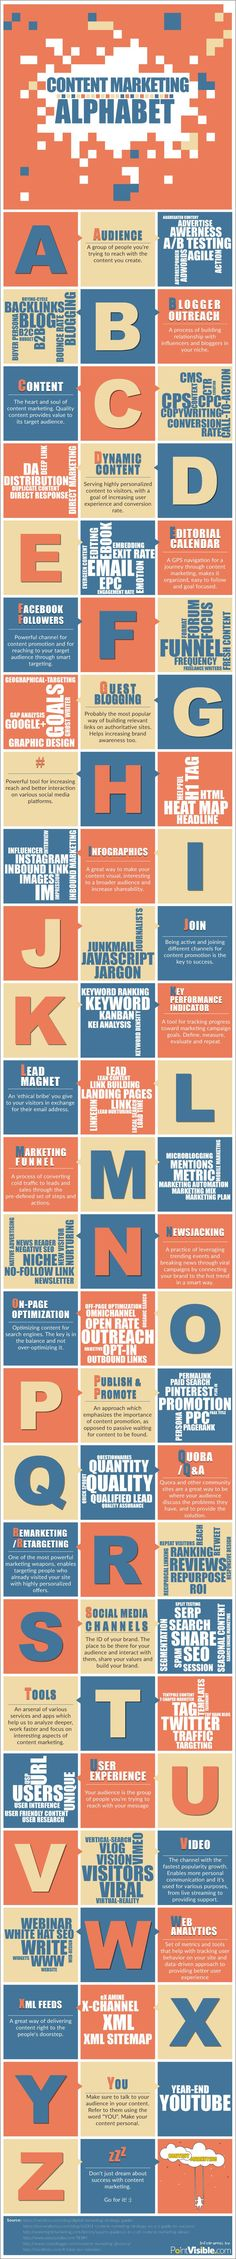 The Content Marketing Alphabet An A-Z of Terms You Need to Know